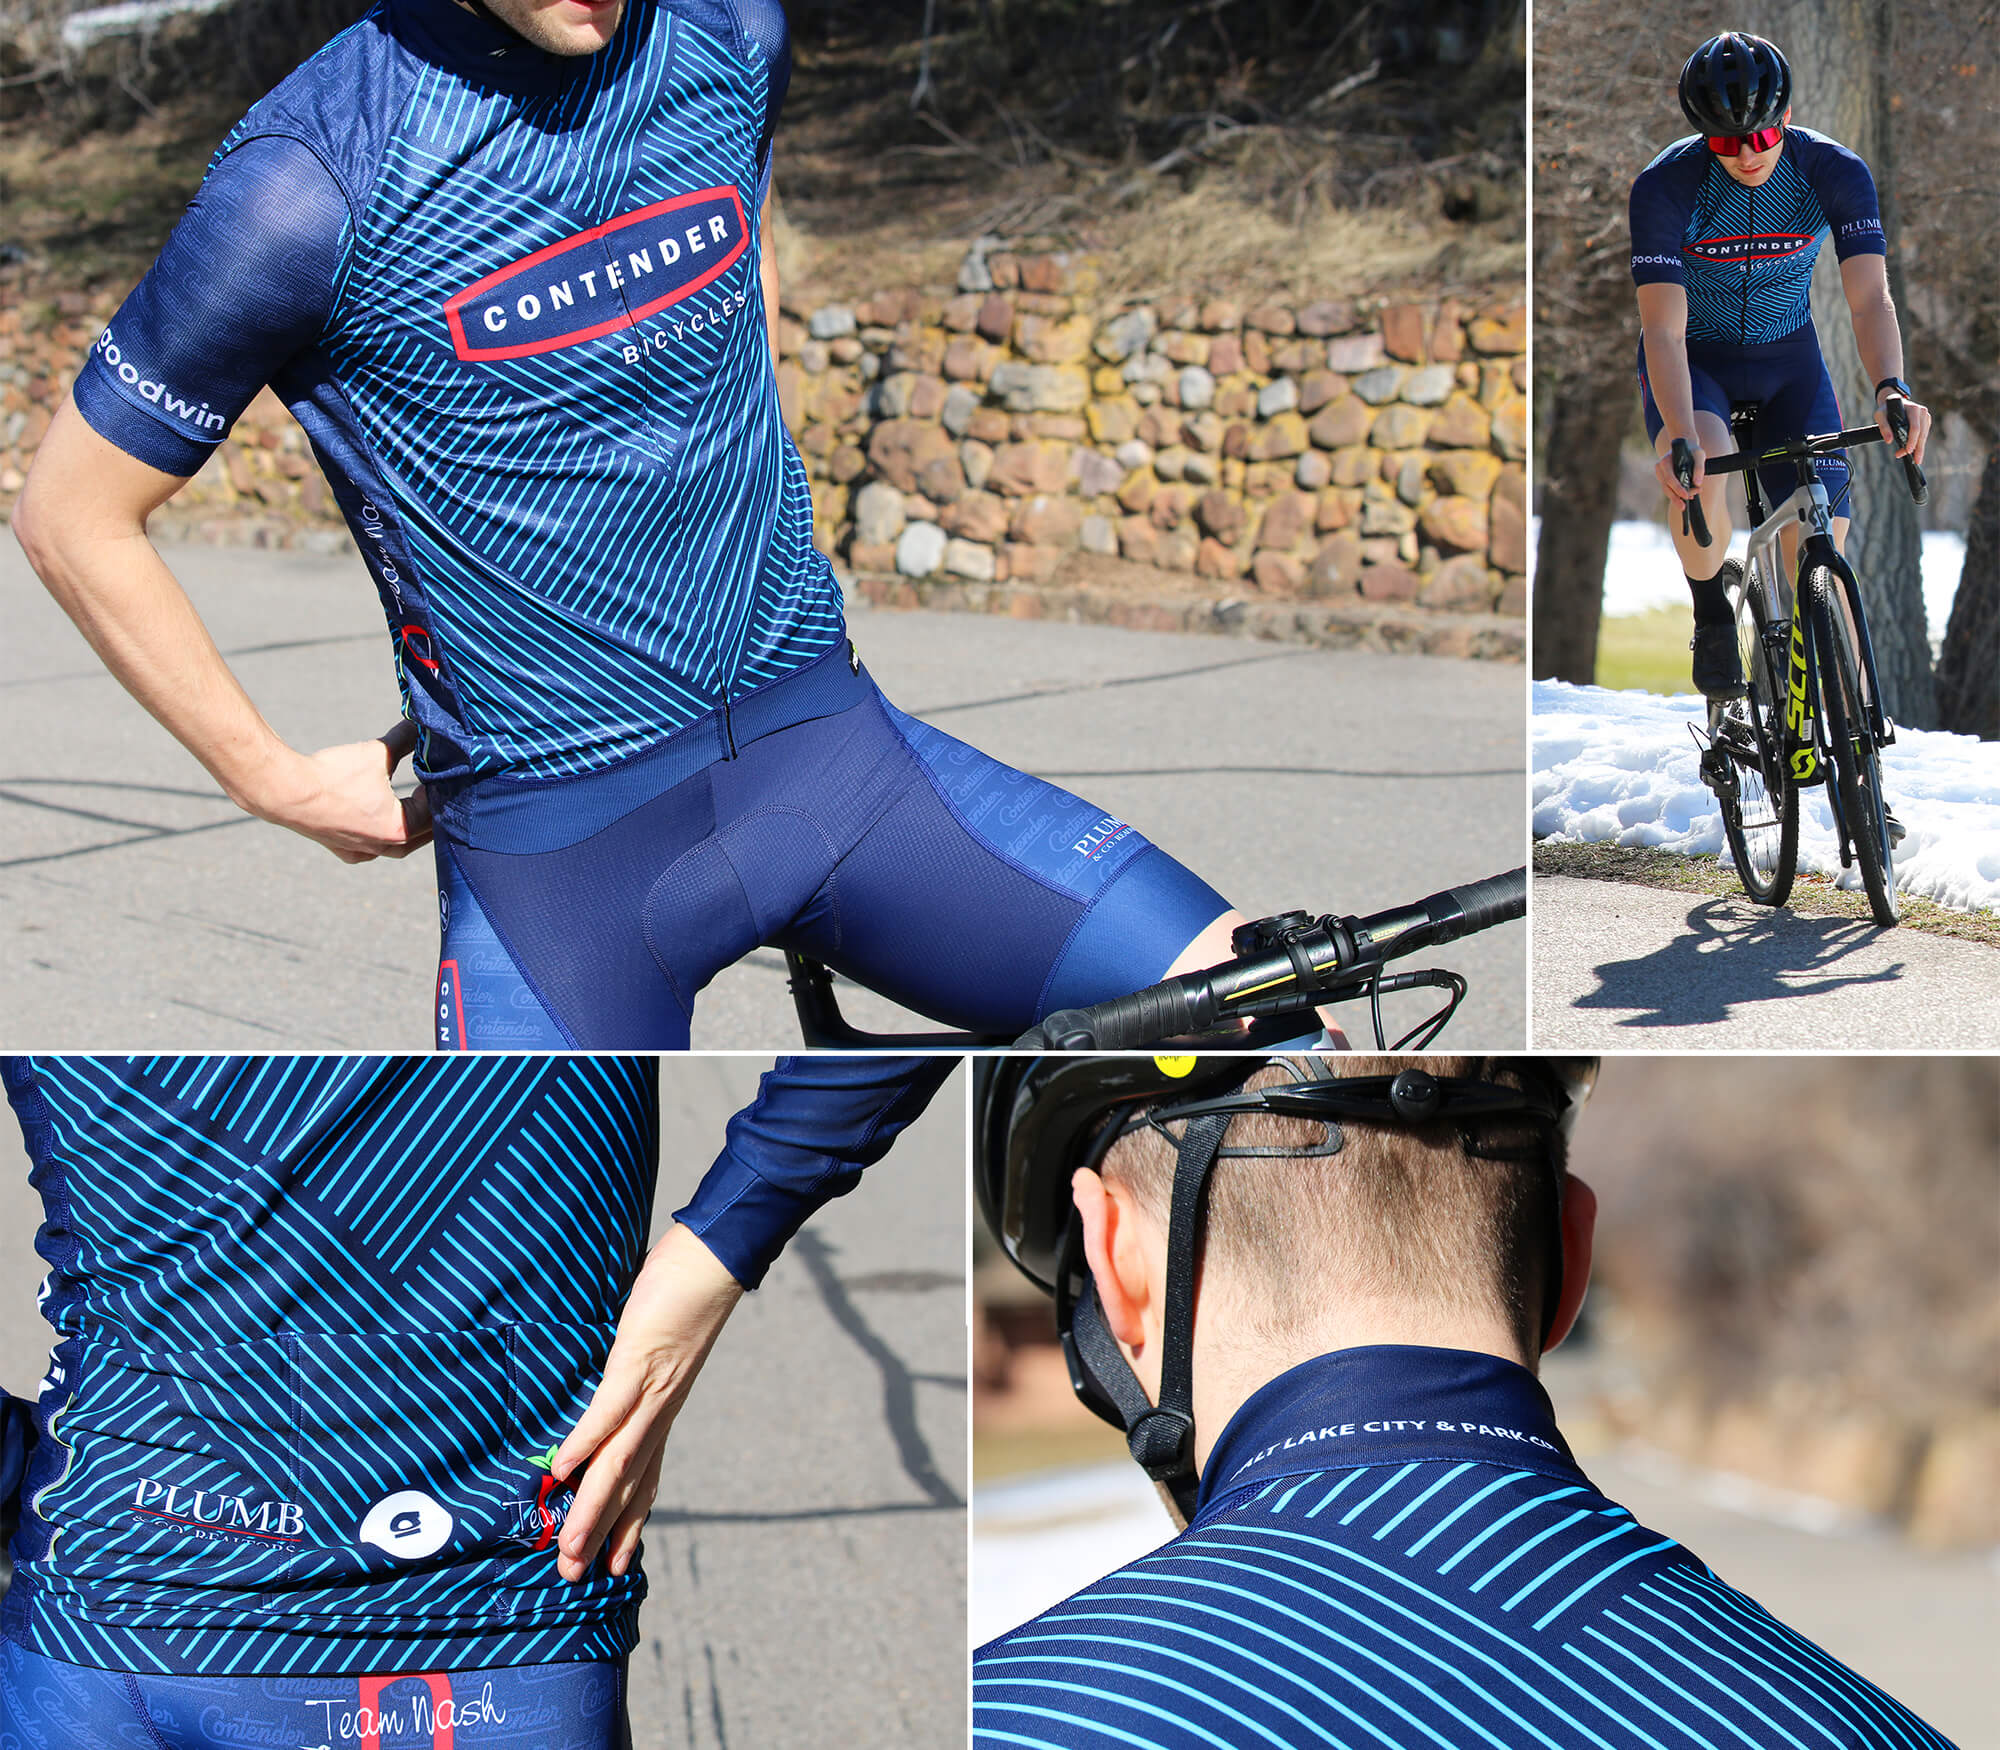 2020 Contender Bicycles Club Kit - Details